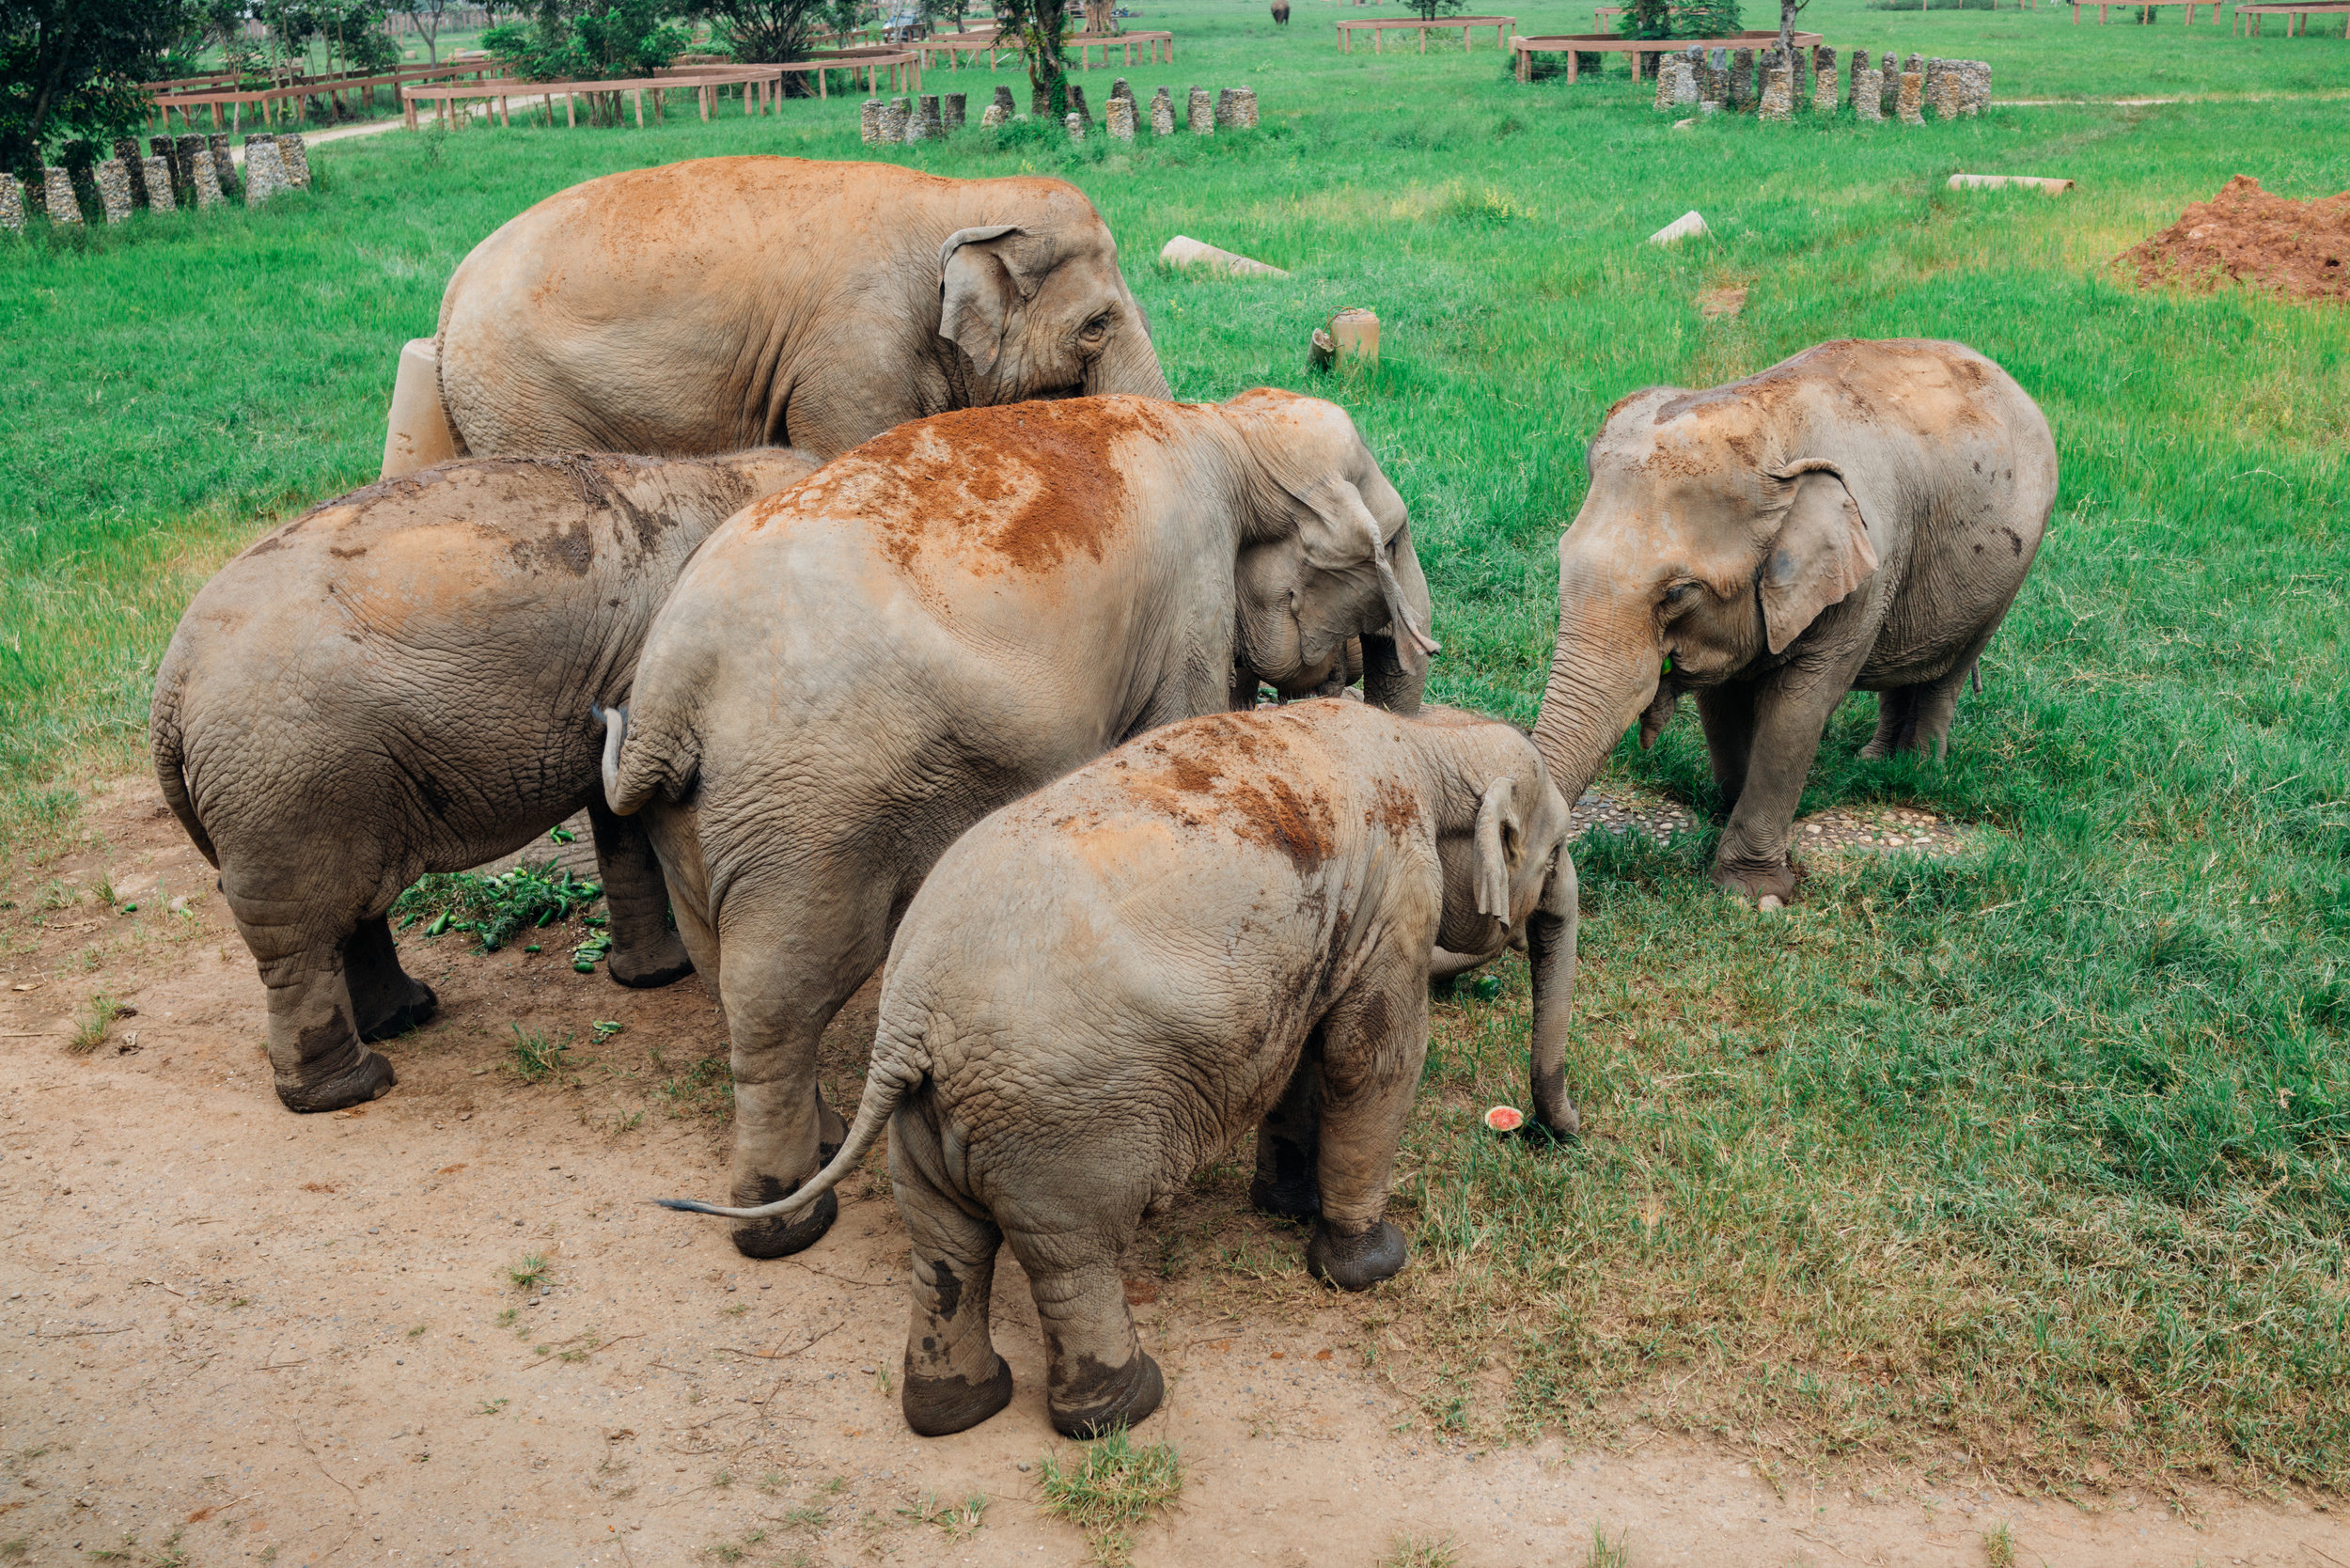 A litter of rescued elephants snacking on watermelons